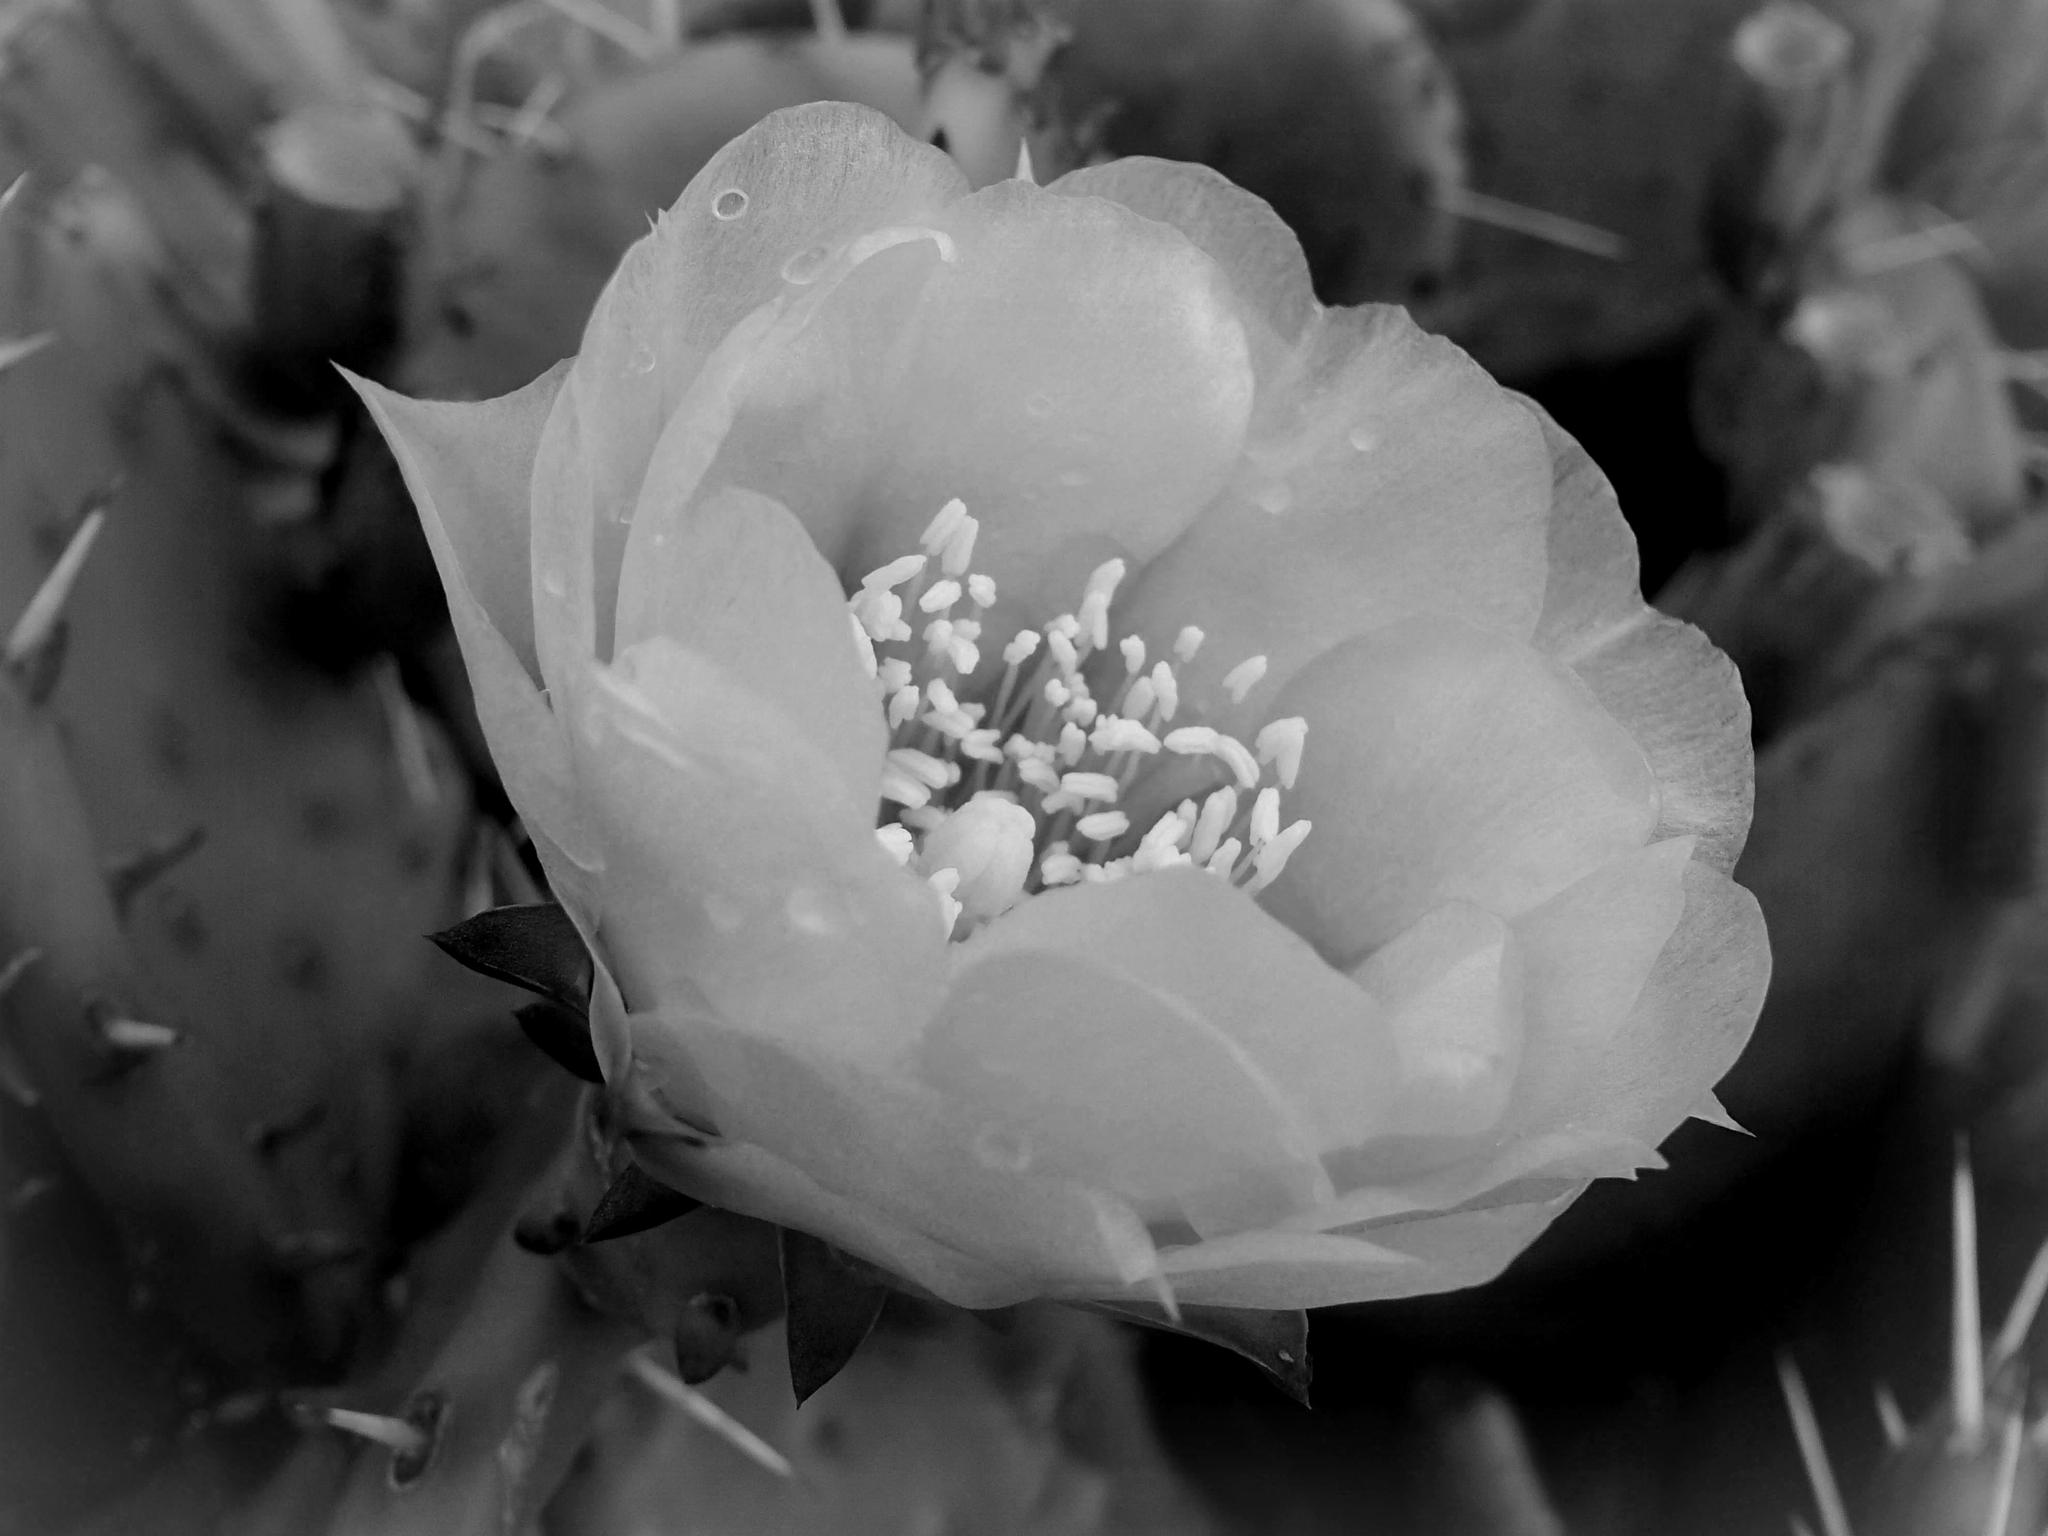 Cactus Flower And Thorns  by dmickler